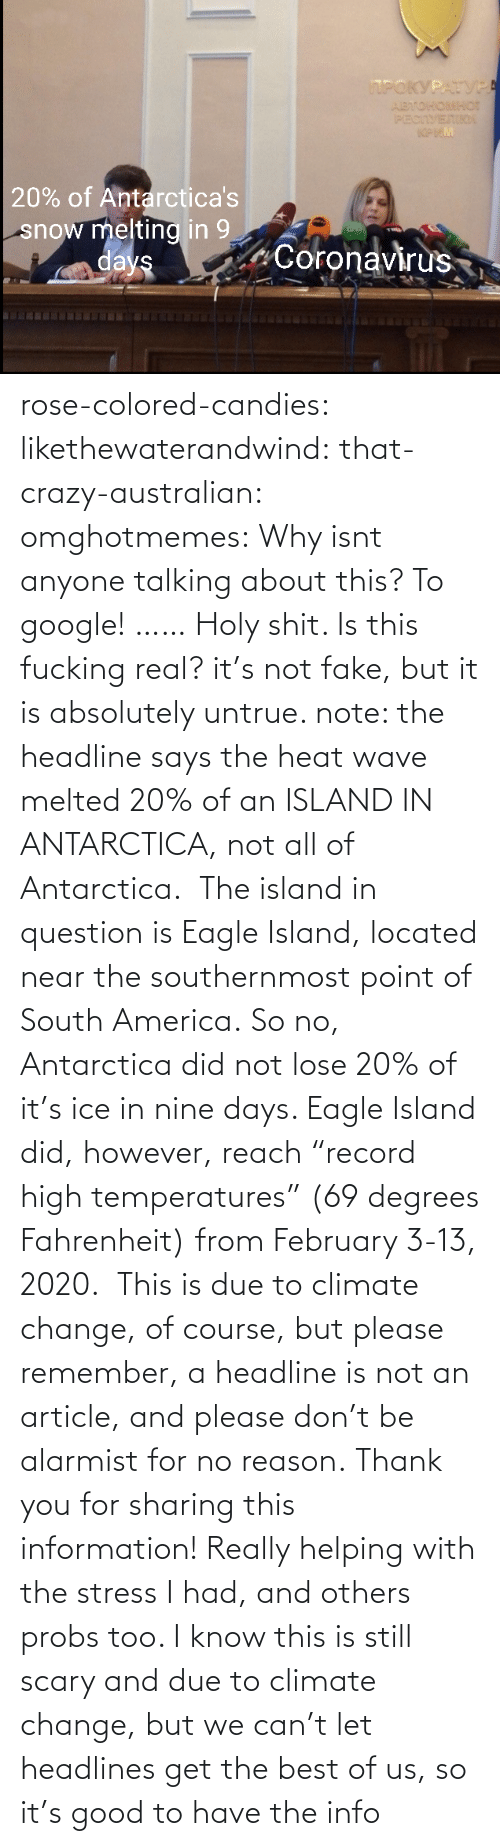 "lose: rose-colored-candies: likethewaterandwind:   that-crazy-australian:  omghotmemes:  Why isnt anyone talking about this?   To google!  ……   Holy shit. Is this fucking real?   it's not fake, but it is absolutely untrue. note: the headline says the heat wave melted 20% of an ISLAND IN ANTARCTICA, not all of Antarctica.  The island in question is Eagle Island, located near the southernmost point of South America. So no, Antarctica did not lose 20% of it's ice in nine days. Eagle Island did, however, reach ""record high temperatures"" (69 degrees Fahrenheit) from February 3-13, 2020.  This is due to climate change, of course, but please remember, a headline is not an article, and please don't be alarmist for no reason.    Thank you for sharing this information! Really helping with the stress I had, and others probs too. I know this is still scary and due to climate change, but we can't let headlines get the best of us, so it's good to have the info"